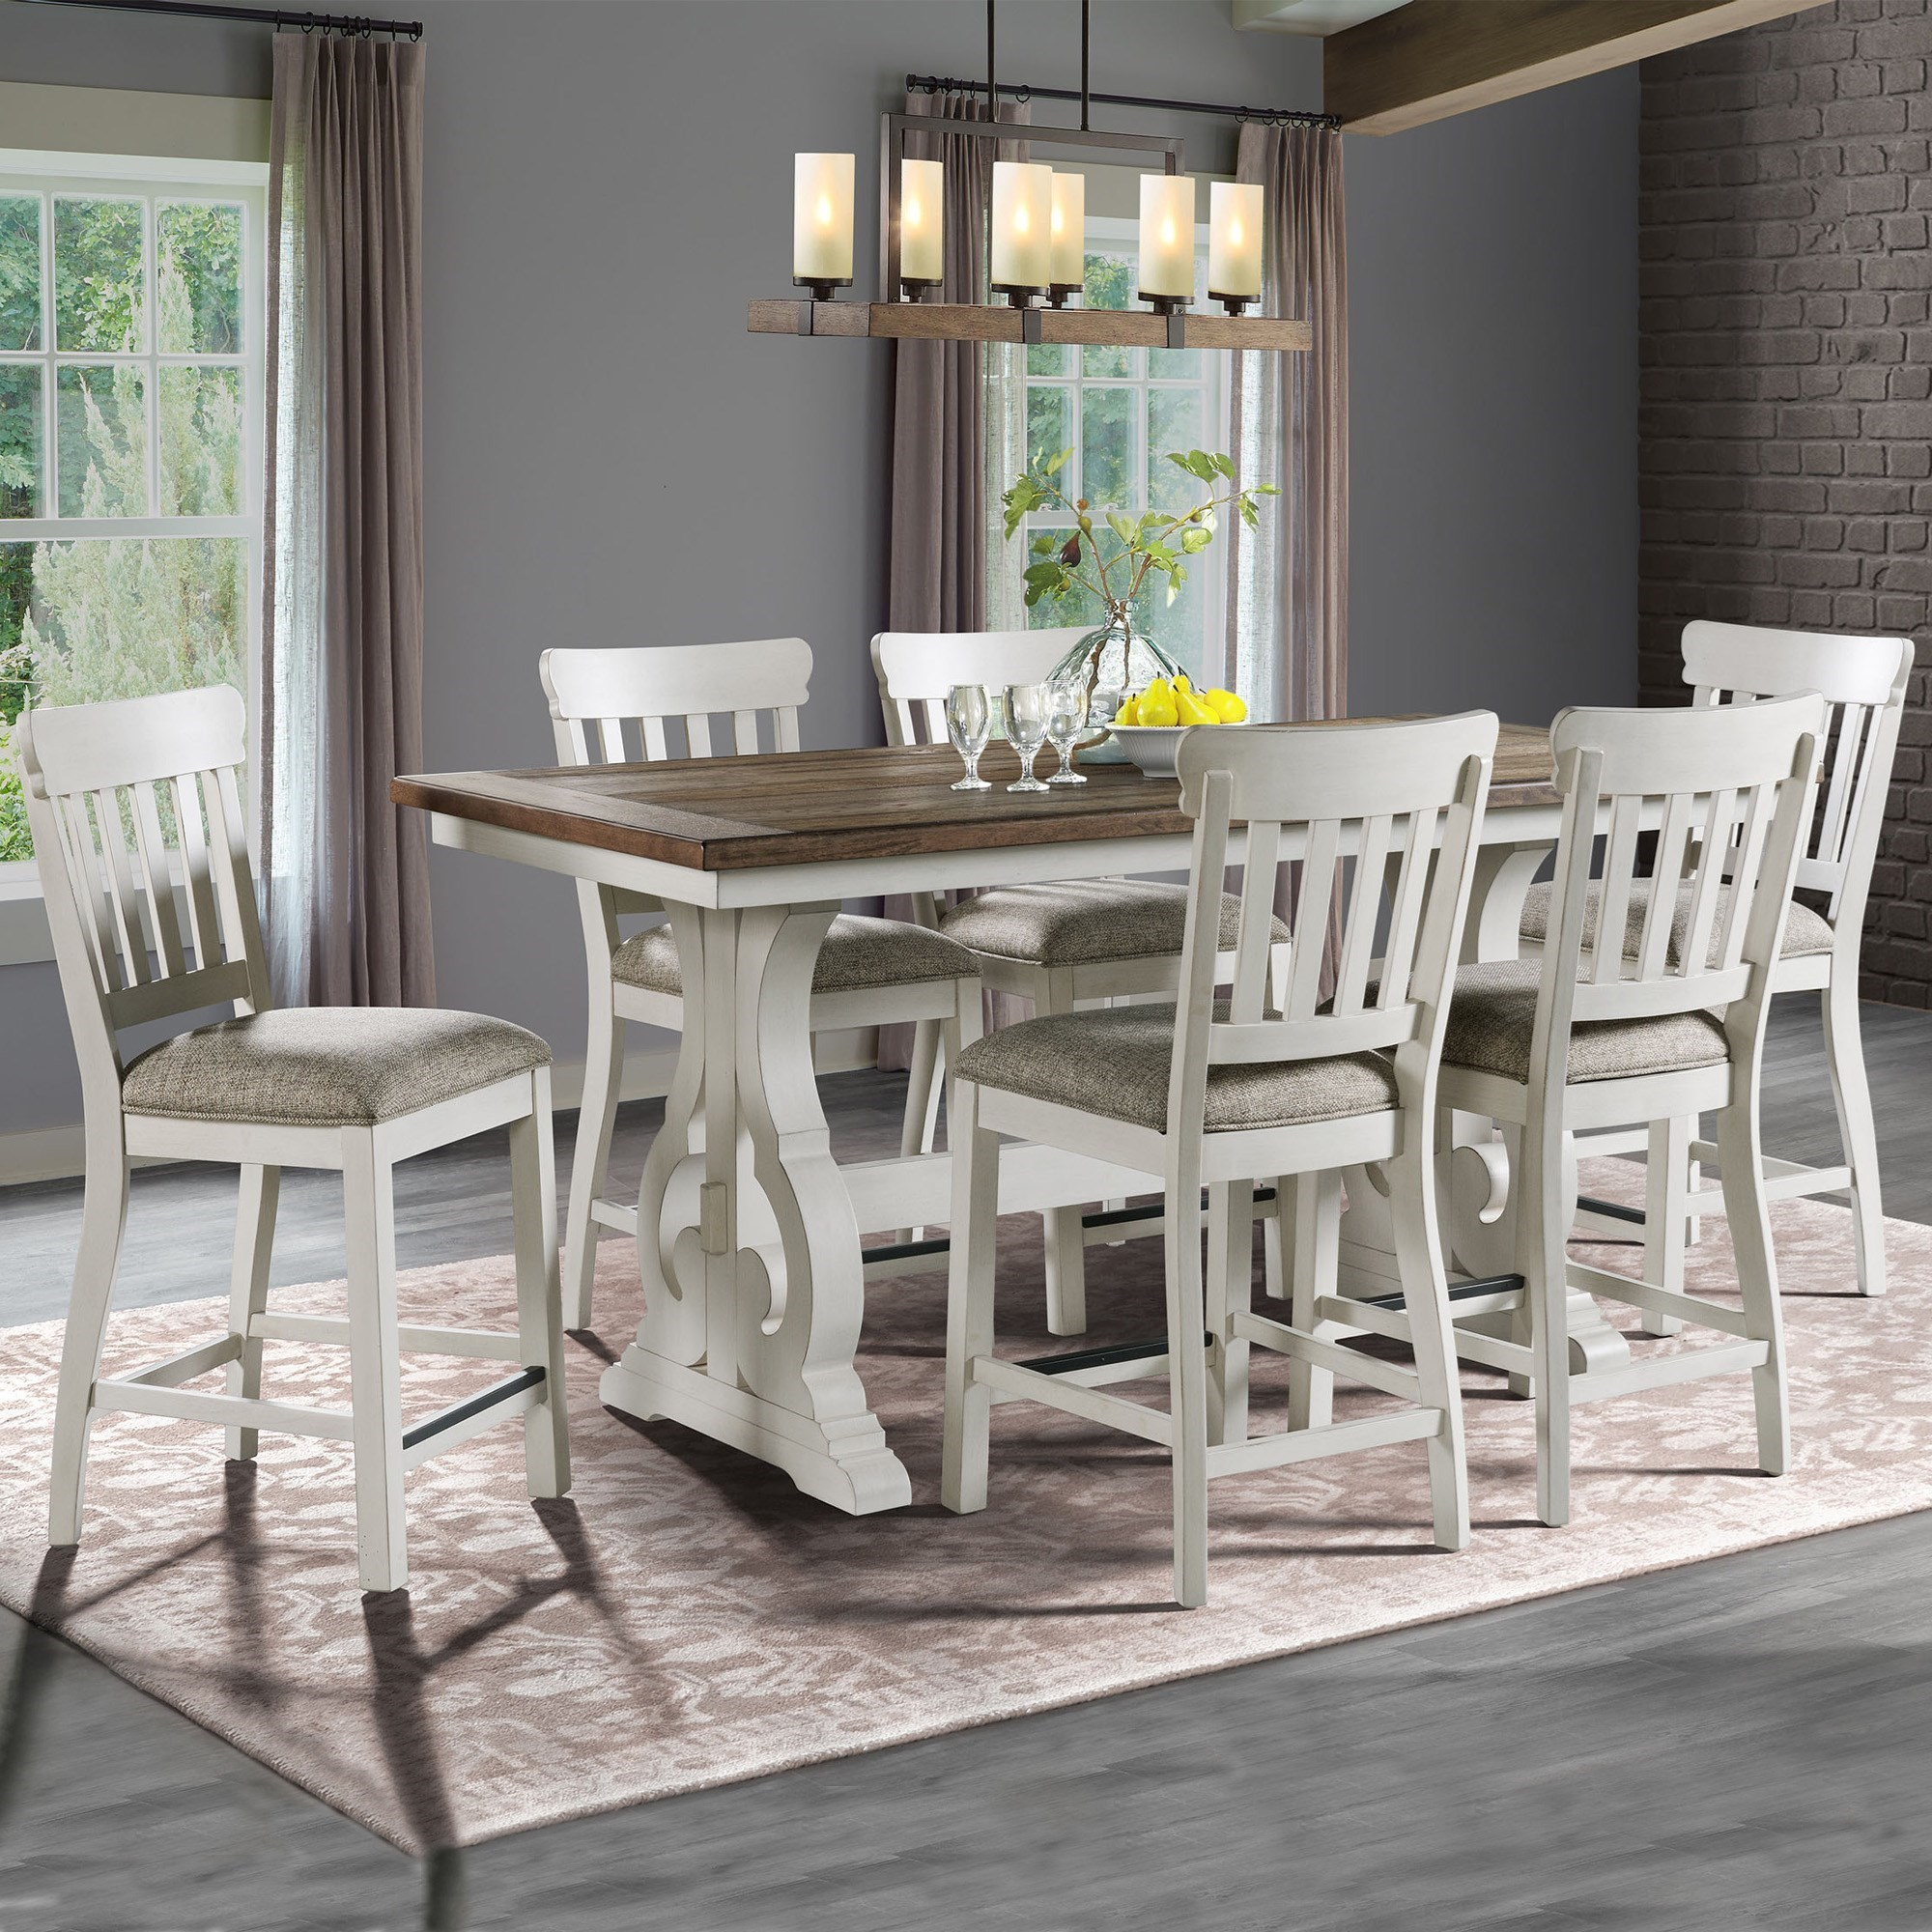 Drake 7-Piece Counter Height Table and Chair Set by Intercon at Dinette Depot